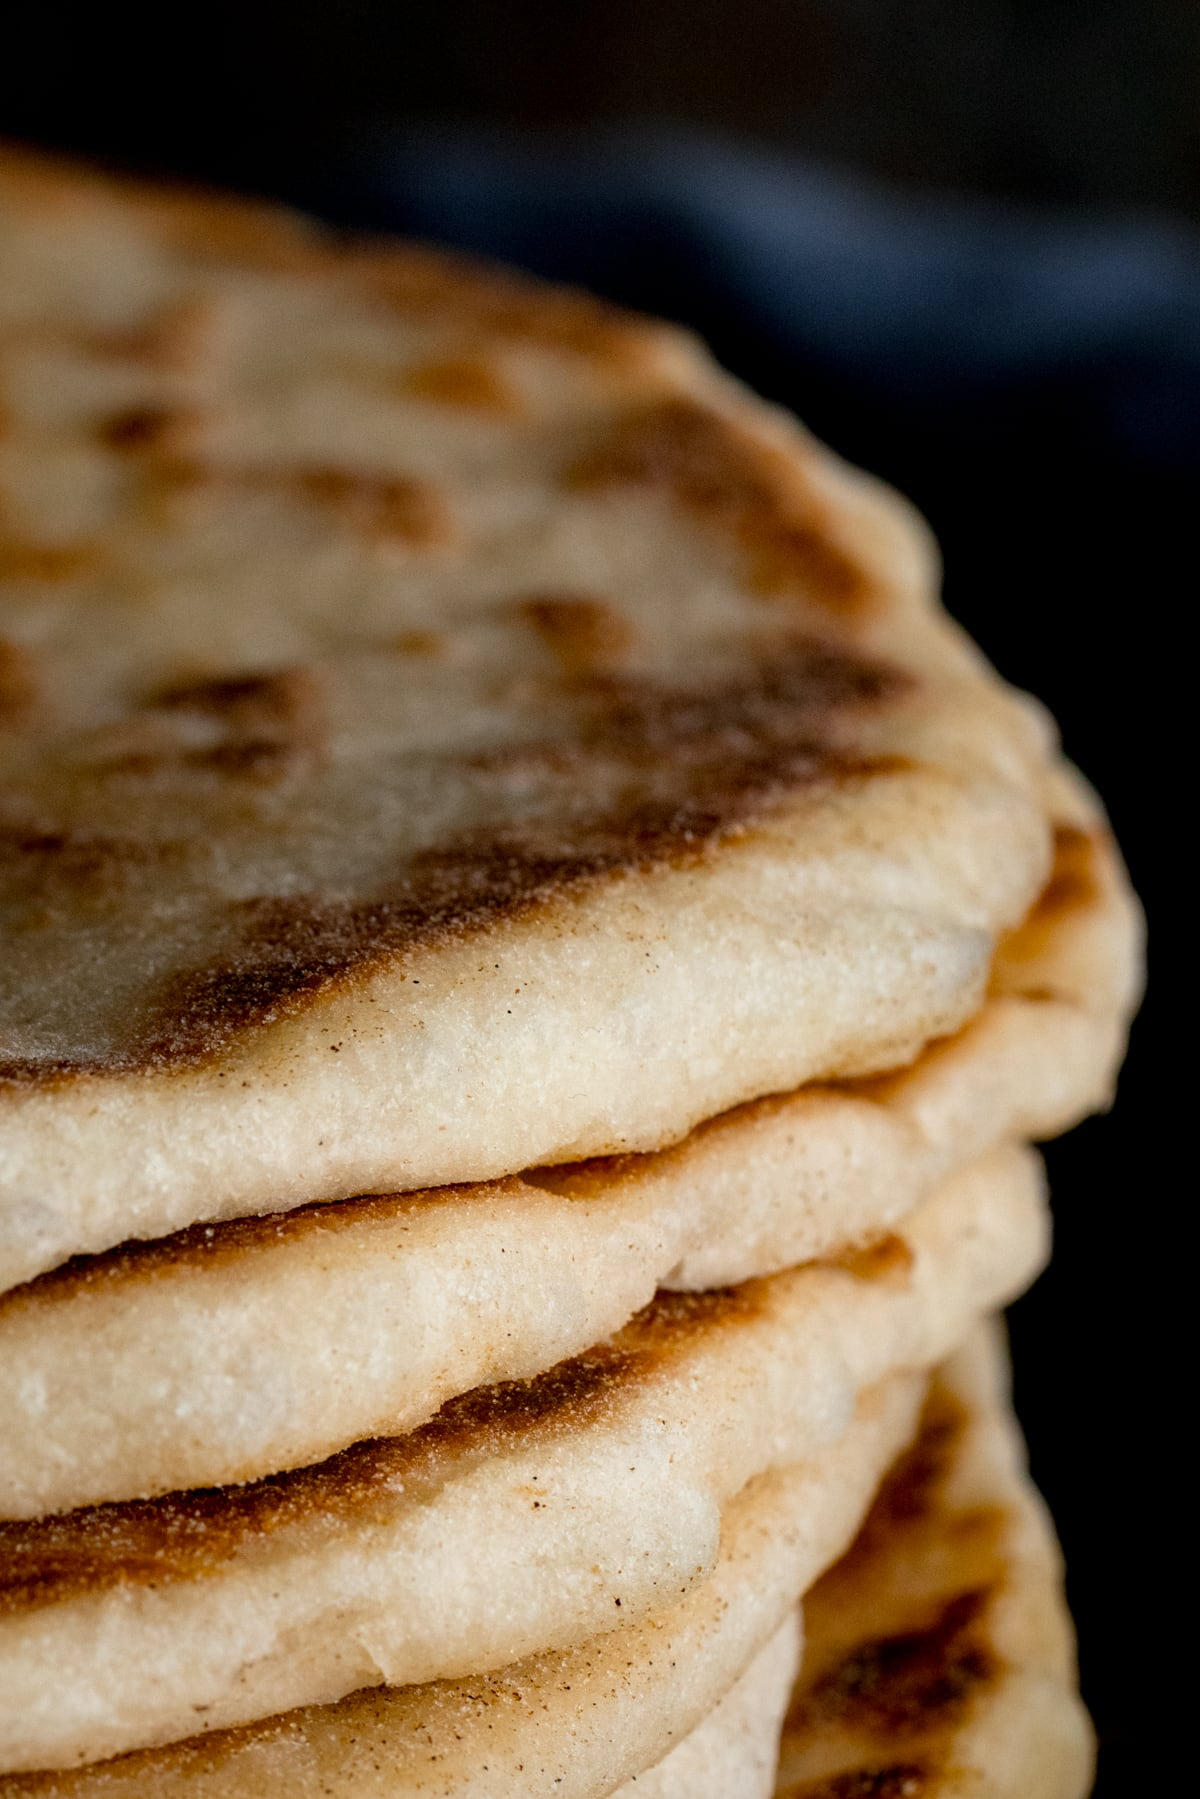 Close up of the edge of a stack of flatbreads, against a dark background.